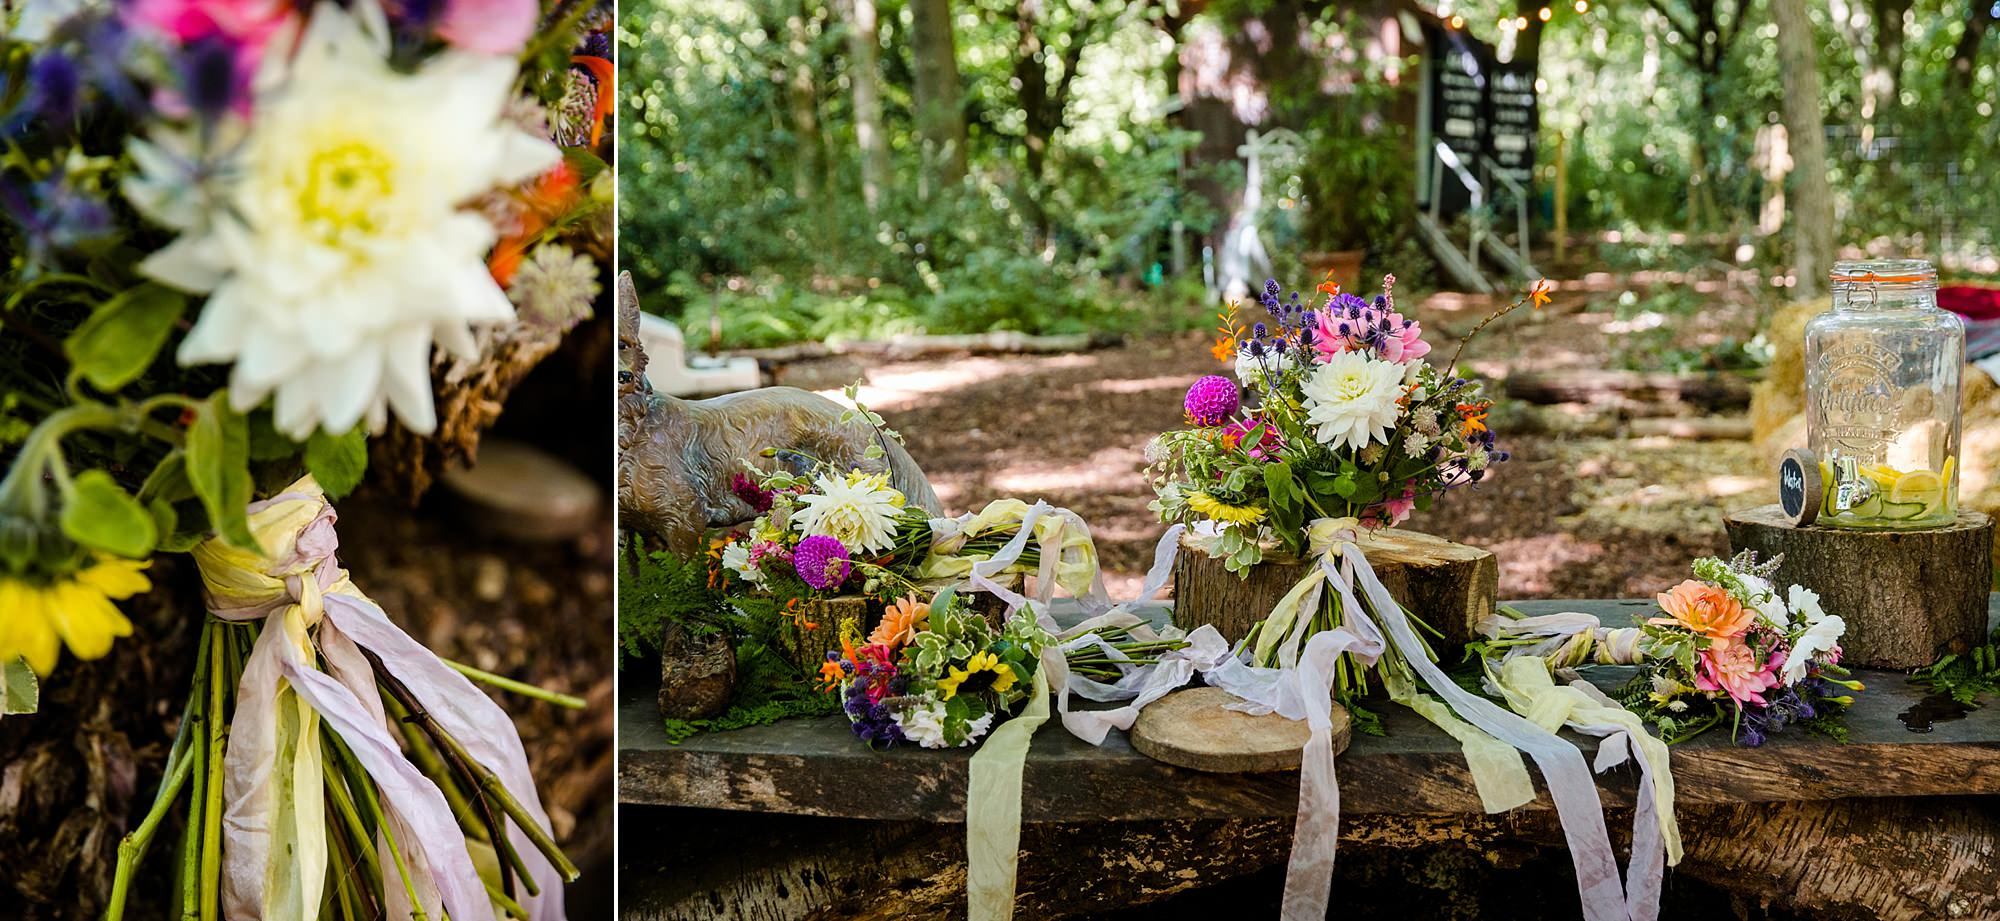 Woodland Weddings Tring bridal party bouquets